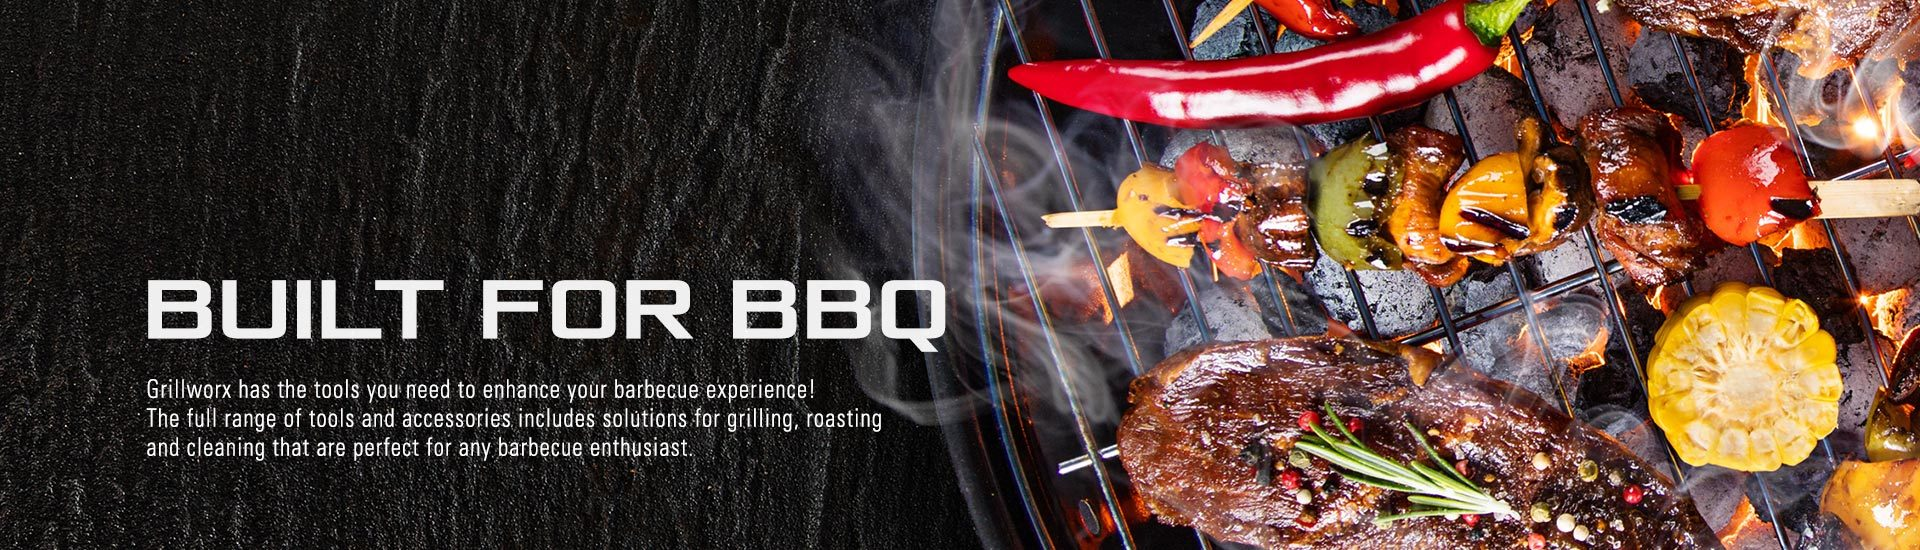 Grillworx_Built For BBQ